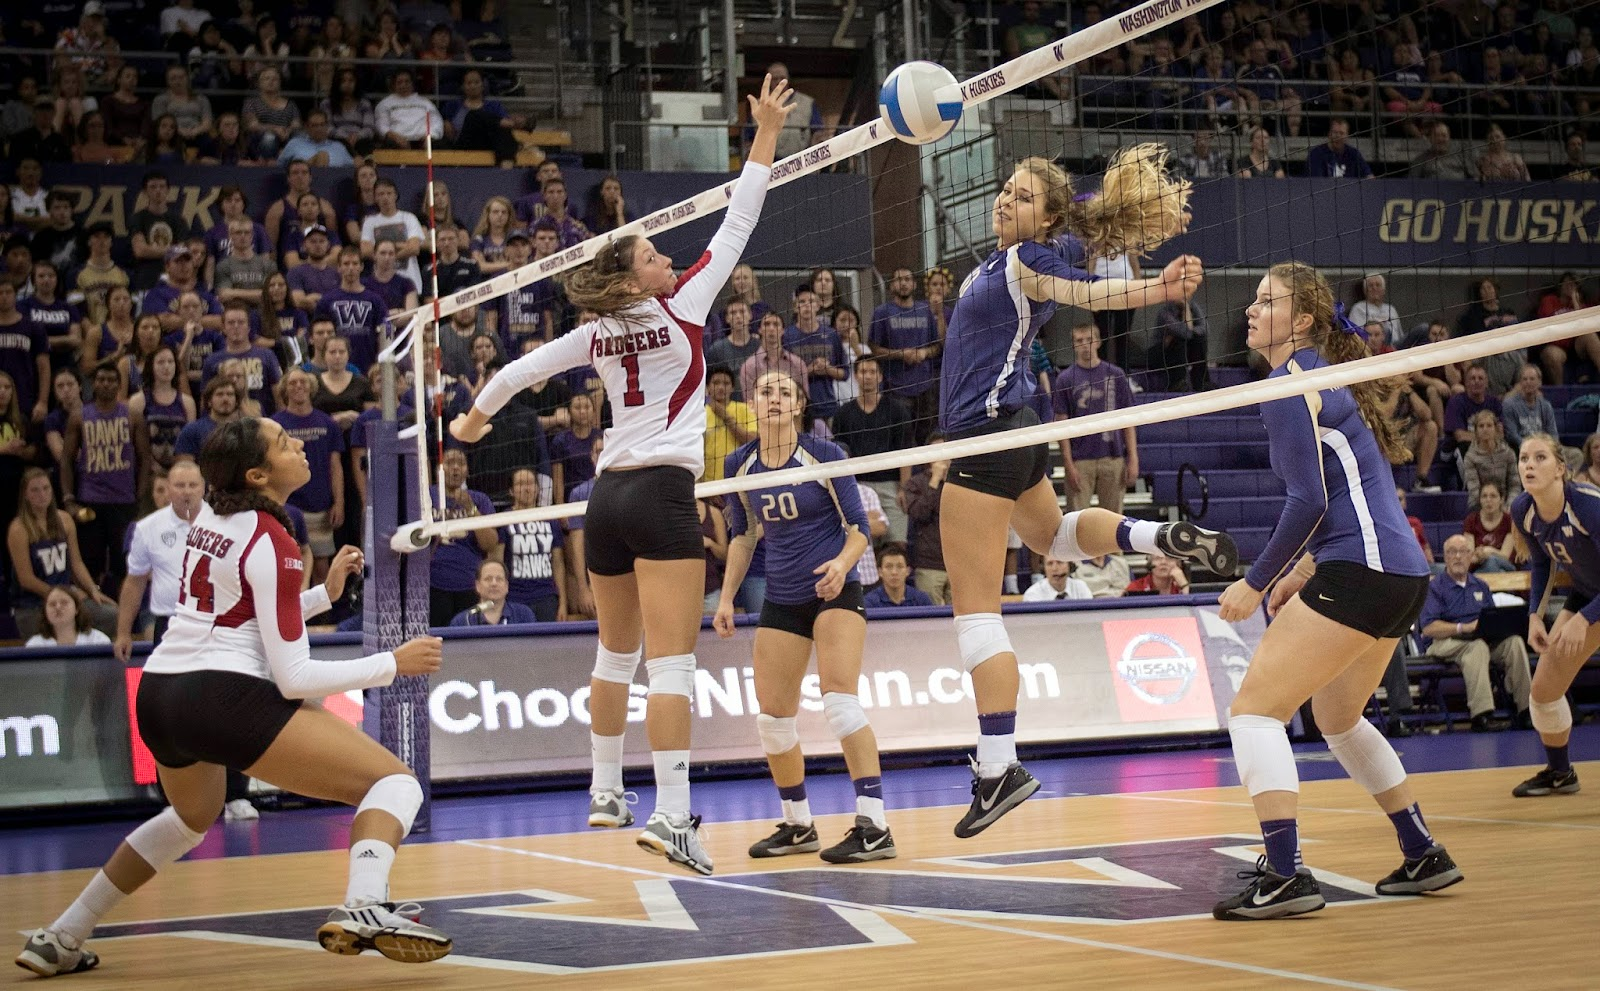 volleyball essay The history and game of volleyballthe game of volleyball, which was originally called mintonette, was invented in 1895 by william g morgan the game was styled as.